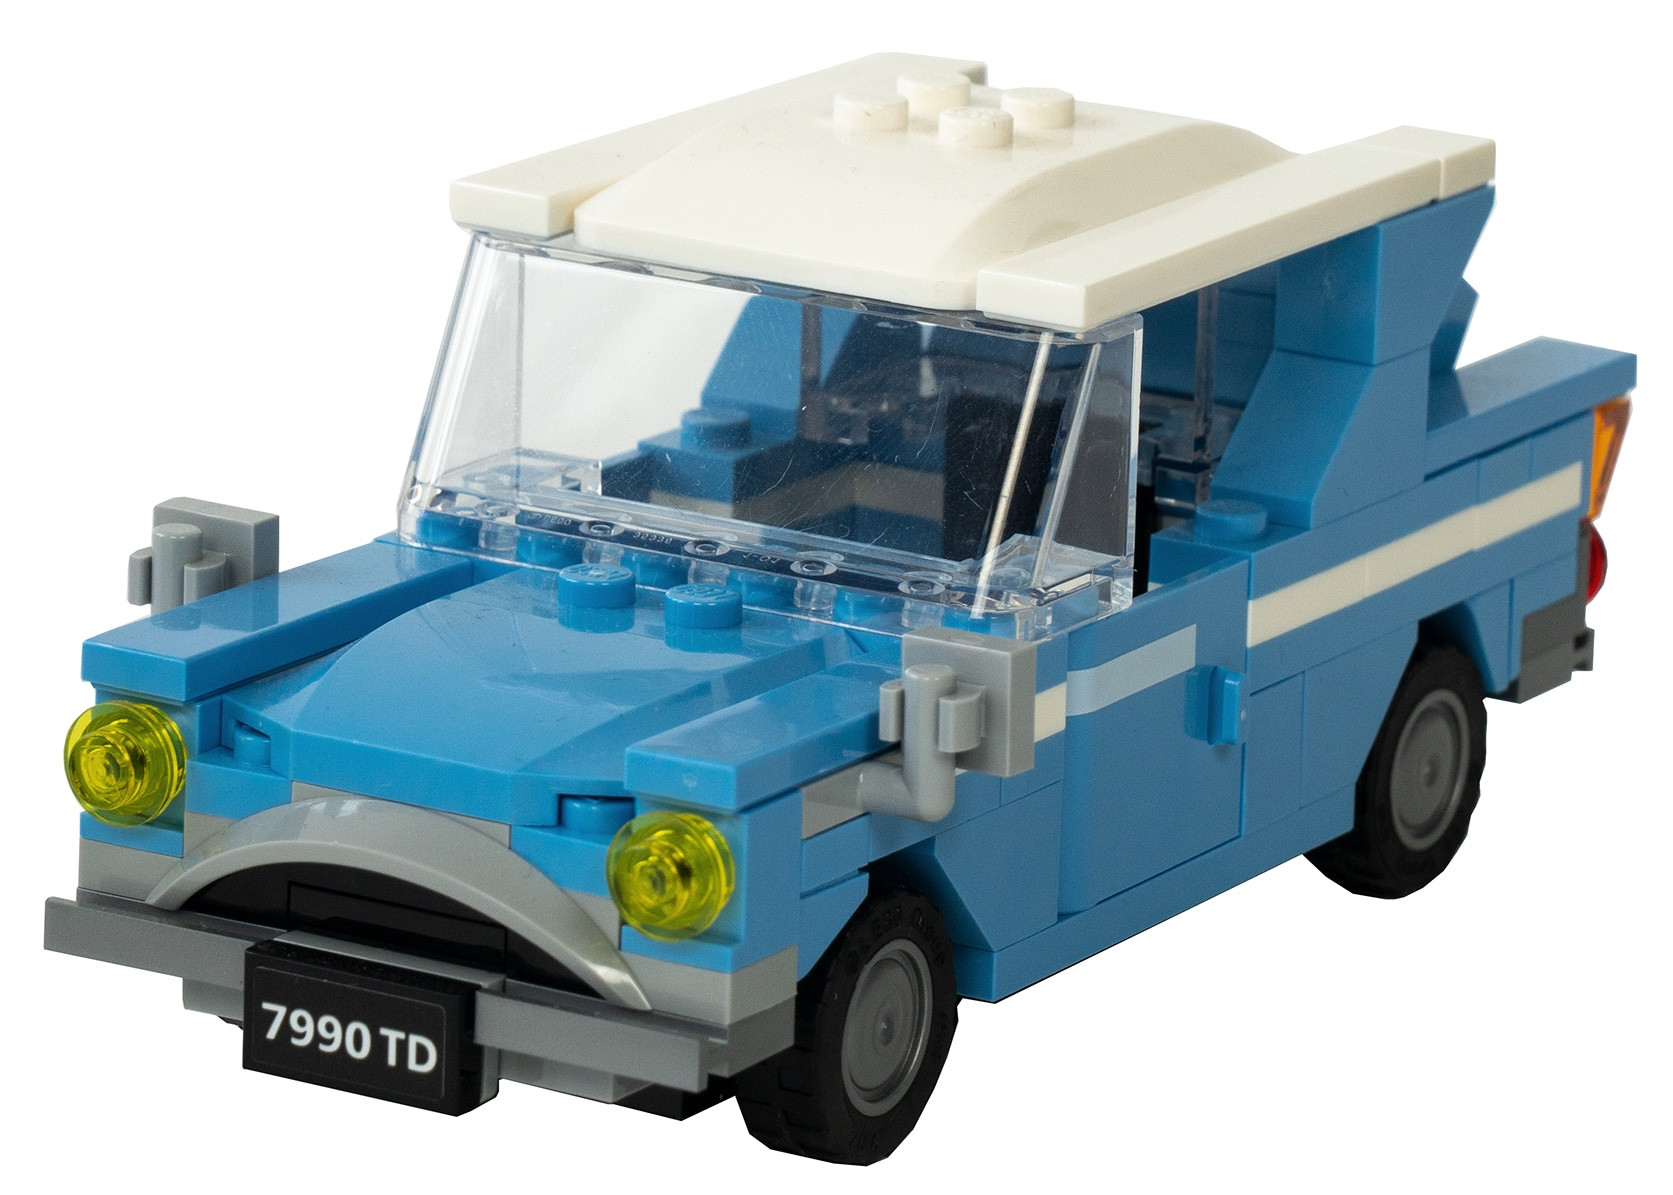 LEGO Harry Potter Ford Anglia (2018)